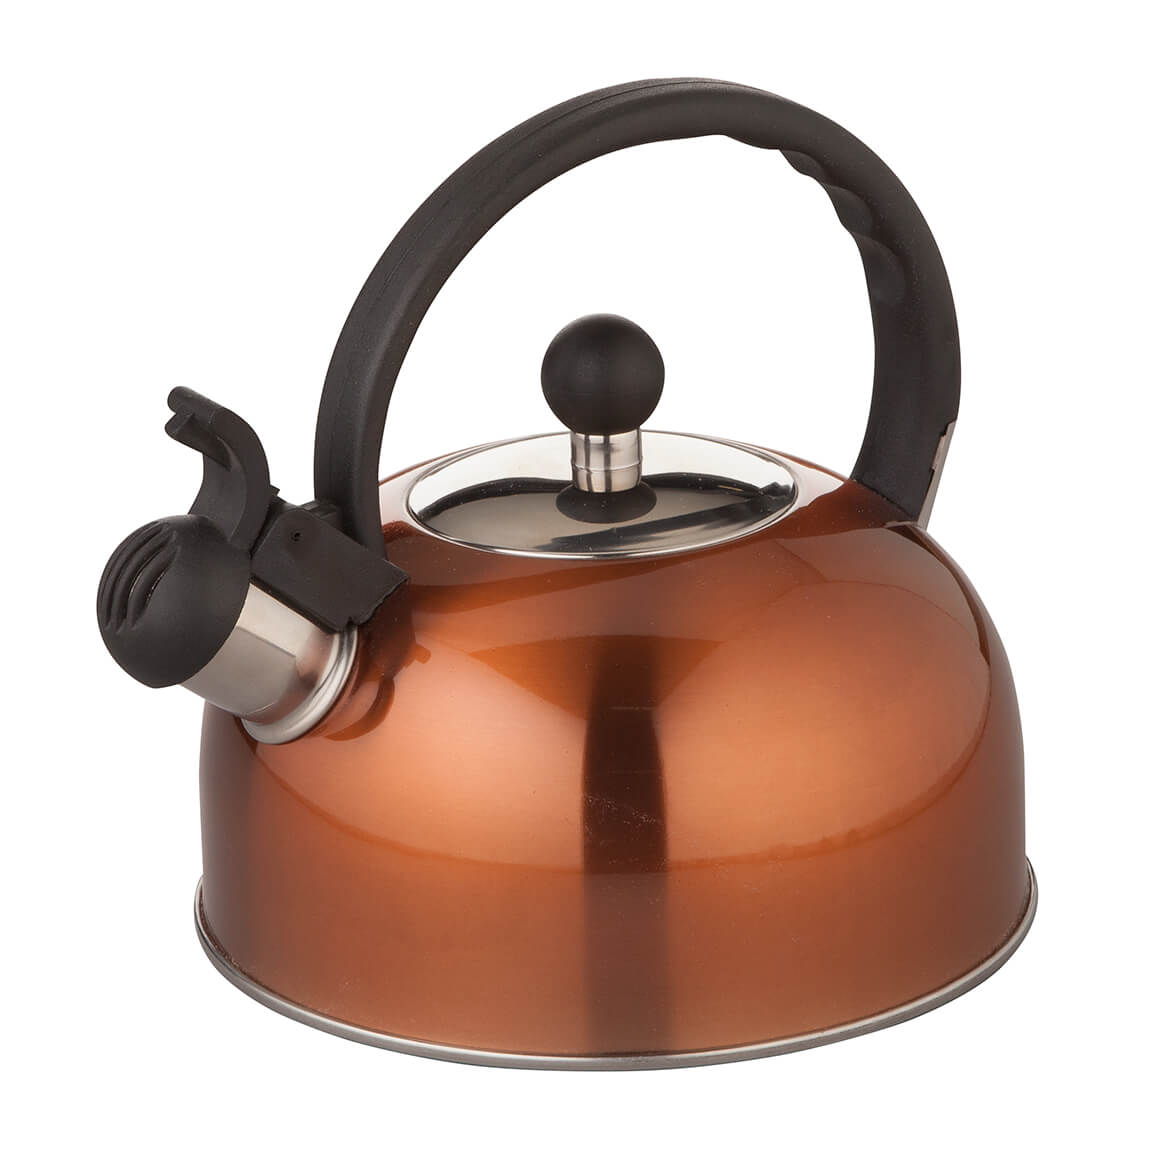 Copper Color Whistling Tea Kettle by Home Marketplace-365925